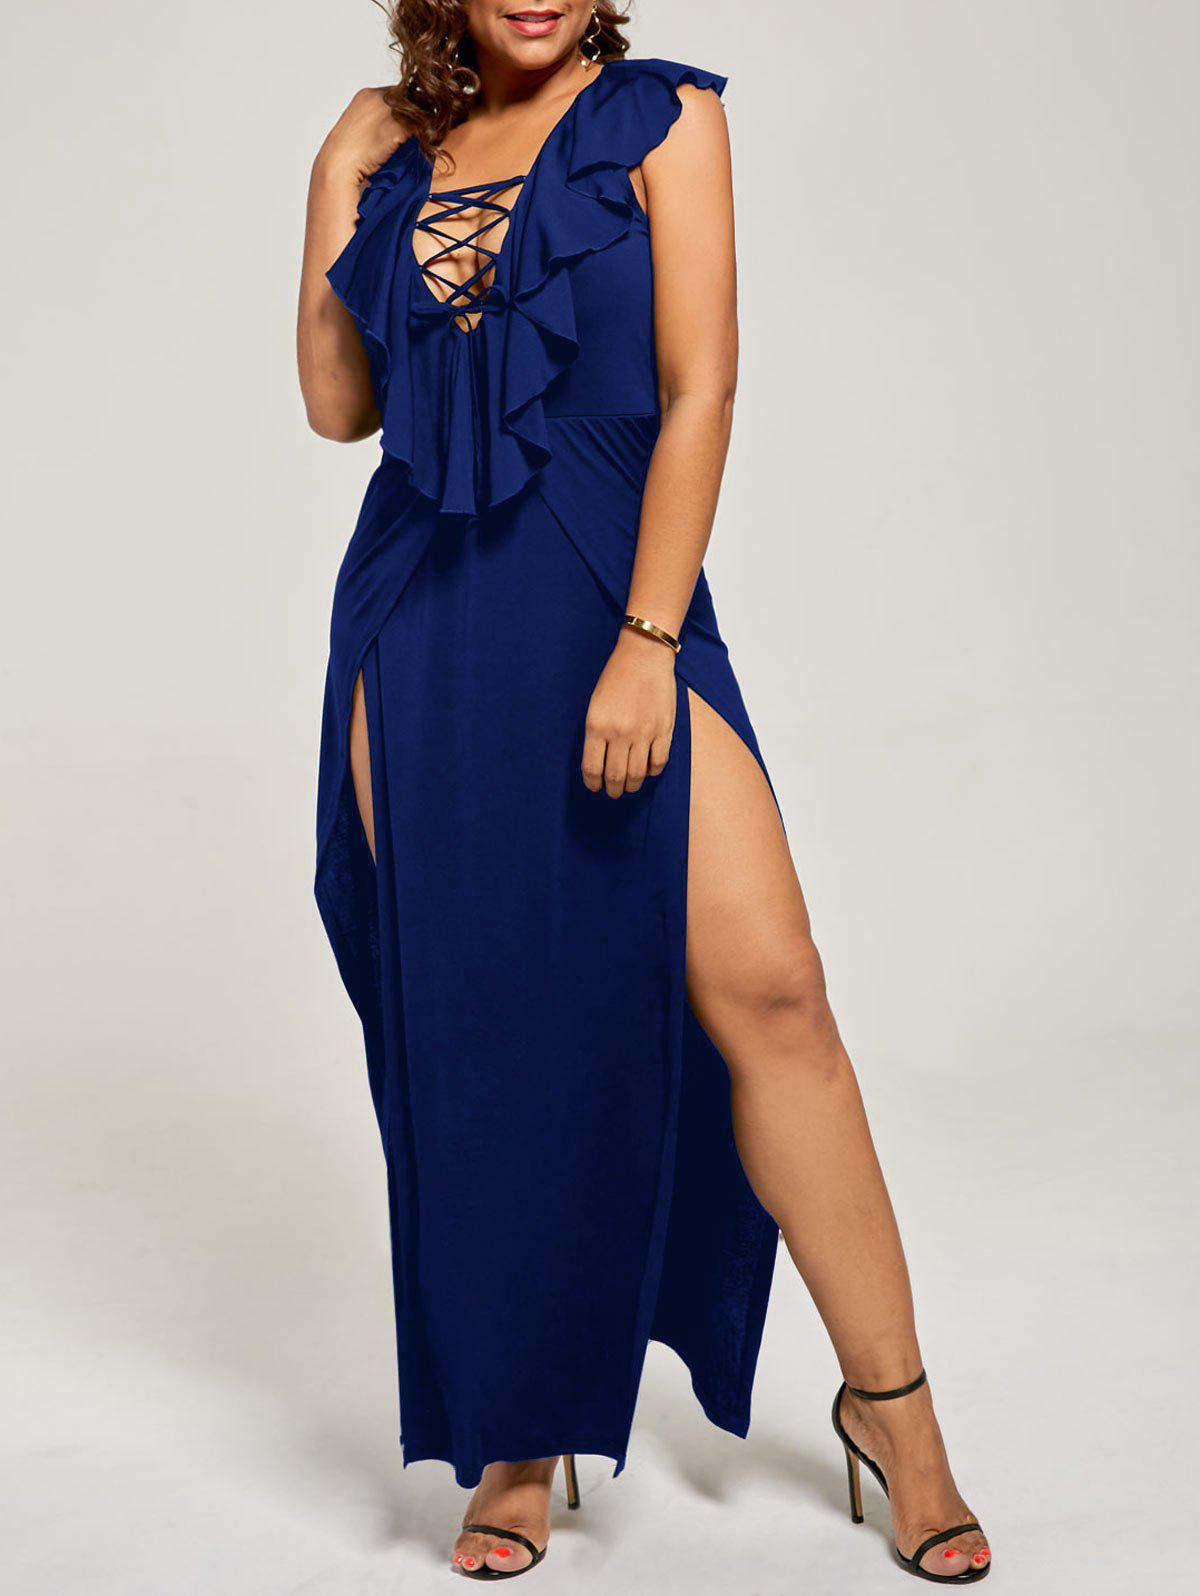 Plus Size Flounce Lace Up Maxi High Slit DressWOMEN<br><br>Size: 4XL; Color: DEEP BLUE; Style: Casual; Material: Polyester,Spandex; Silhouette: A-Line; Dresses Length: Floor-Length; Neckline: Plunging Neck; Sleeve Length: Sleeveless; Pattern Type: Solid; With Belt: No; Season: Fall,Spring,Summer; Weight: 0.3500kg; Package Contents: 1 x Dress;